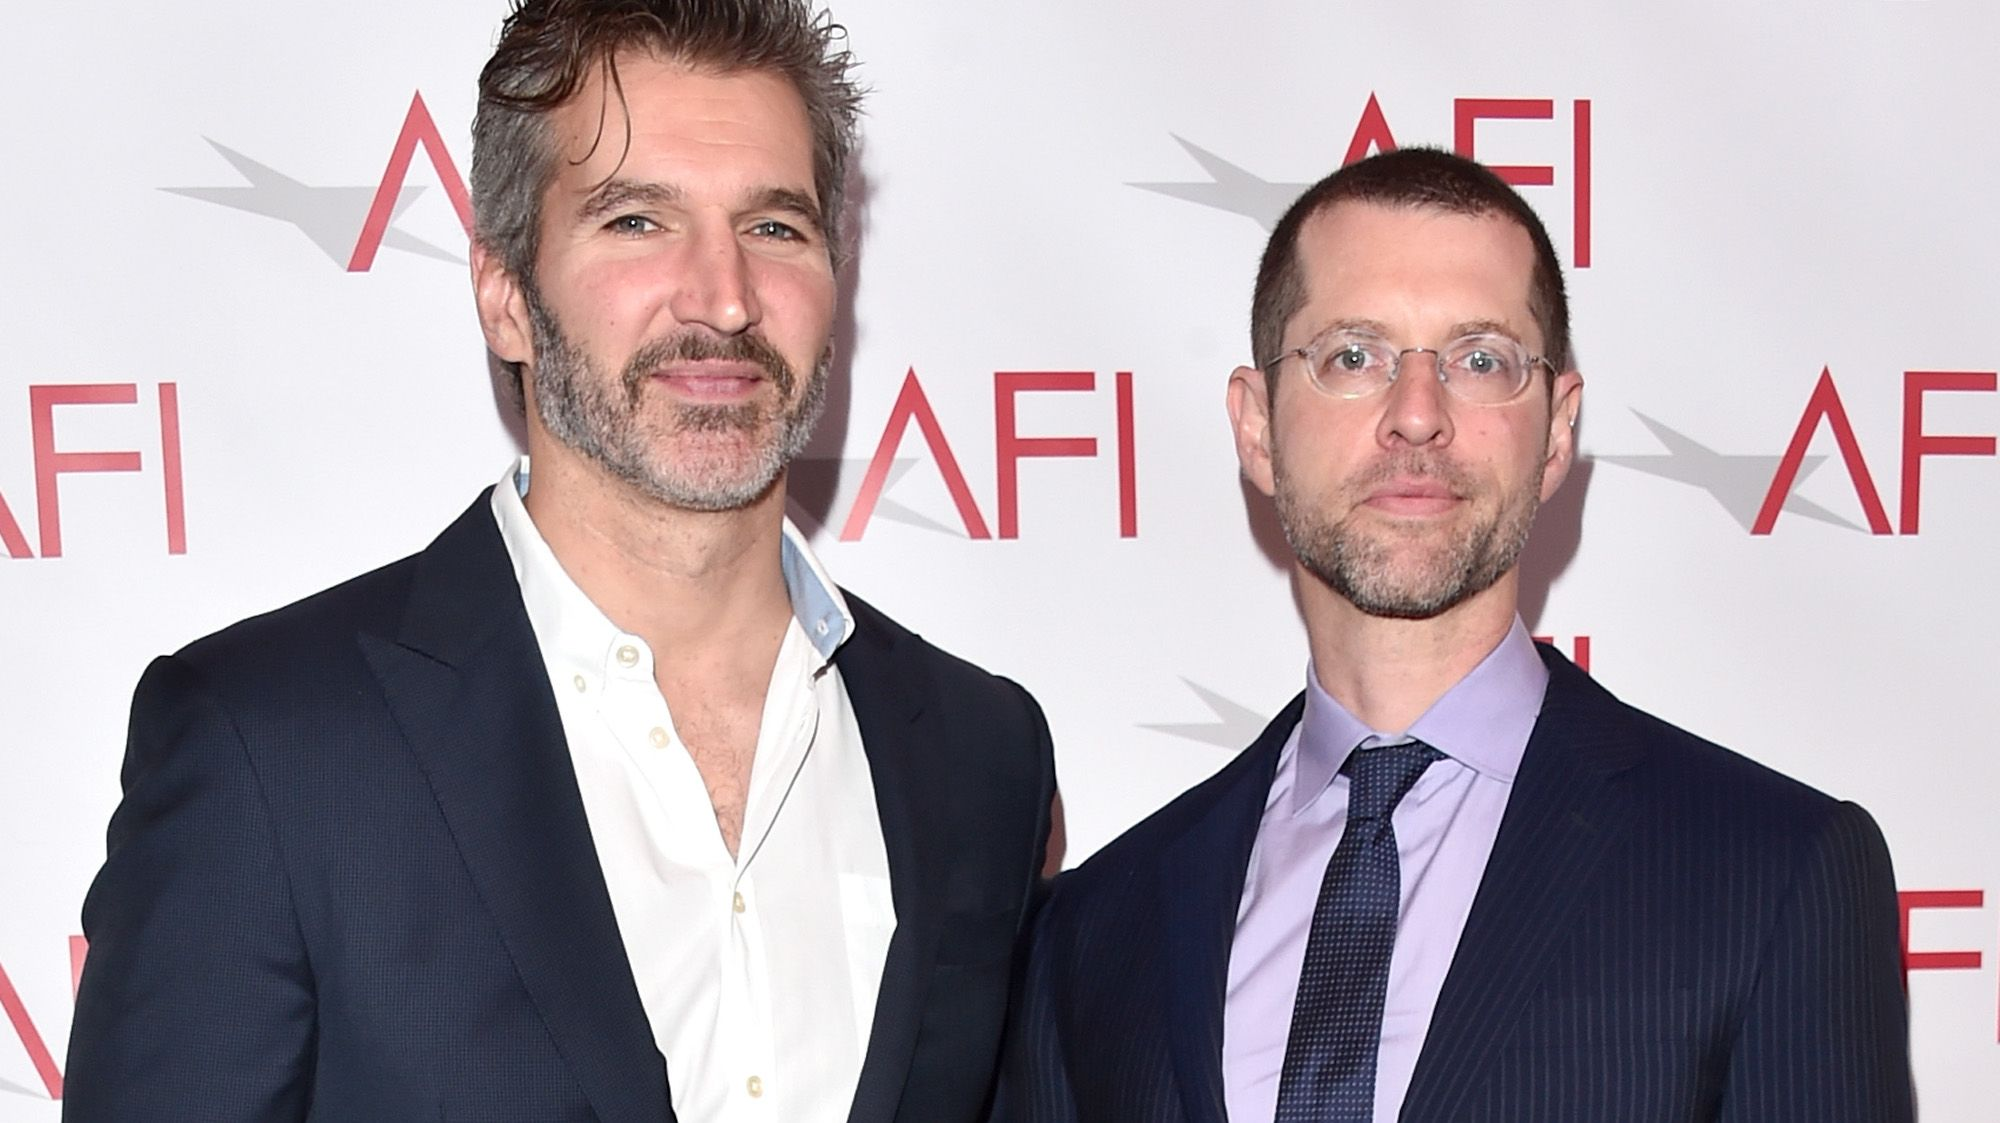 Game of Thrones Showrunners David Benioff and D.B. Weiss Sign Major Deal With Netflix